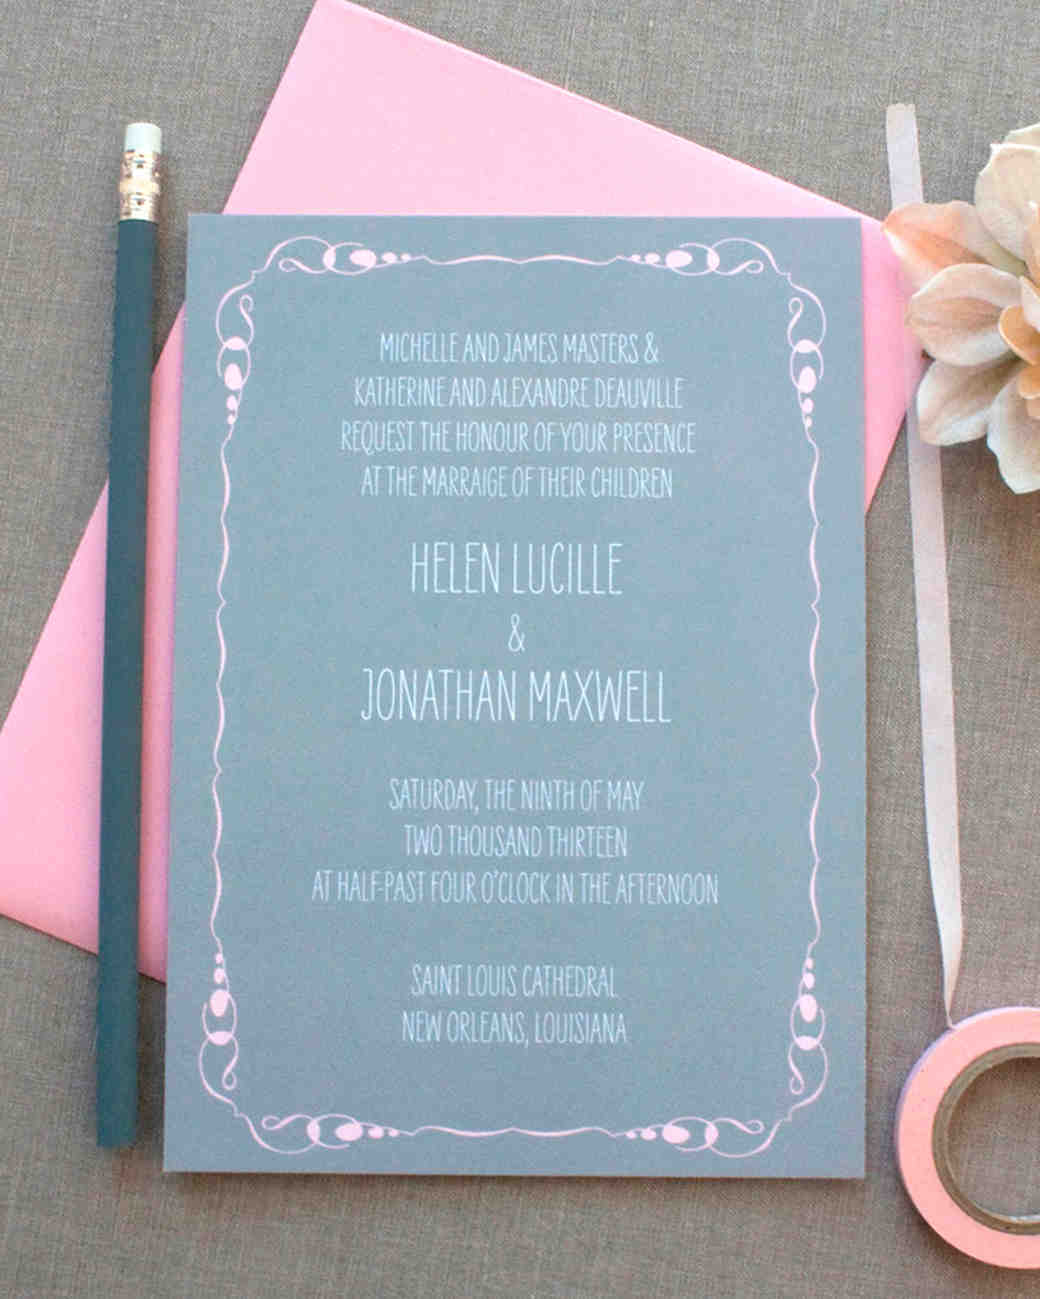 Wedding Invitation Text: 8 Details To Include When Wording Your Wedding Invitation